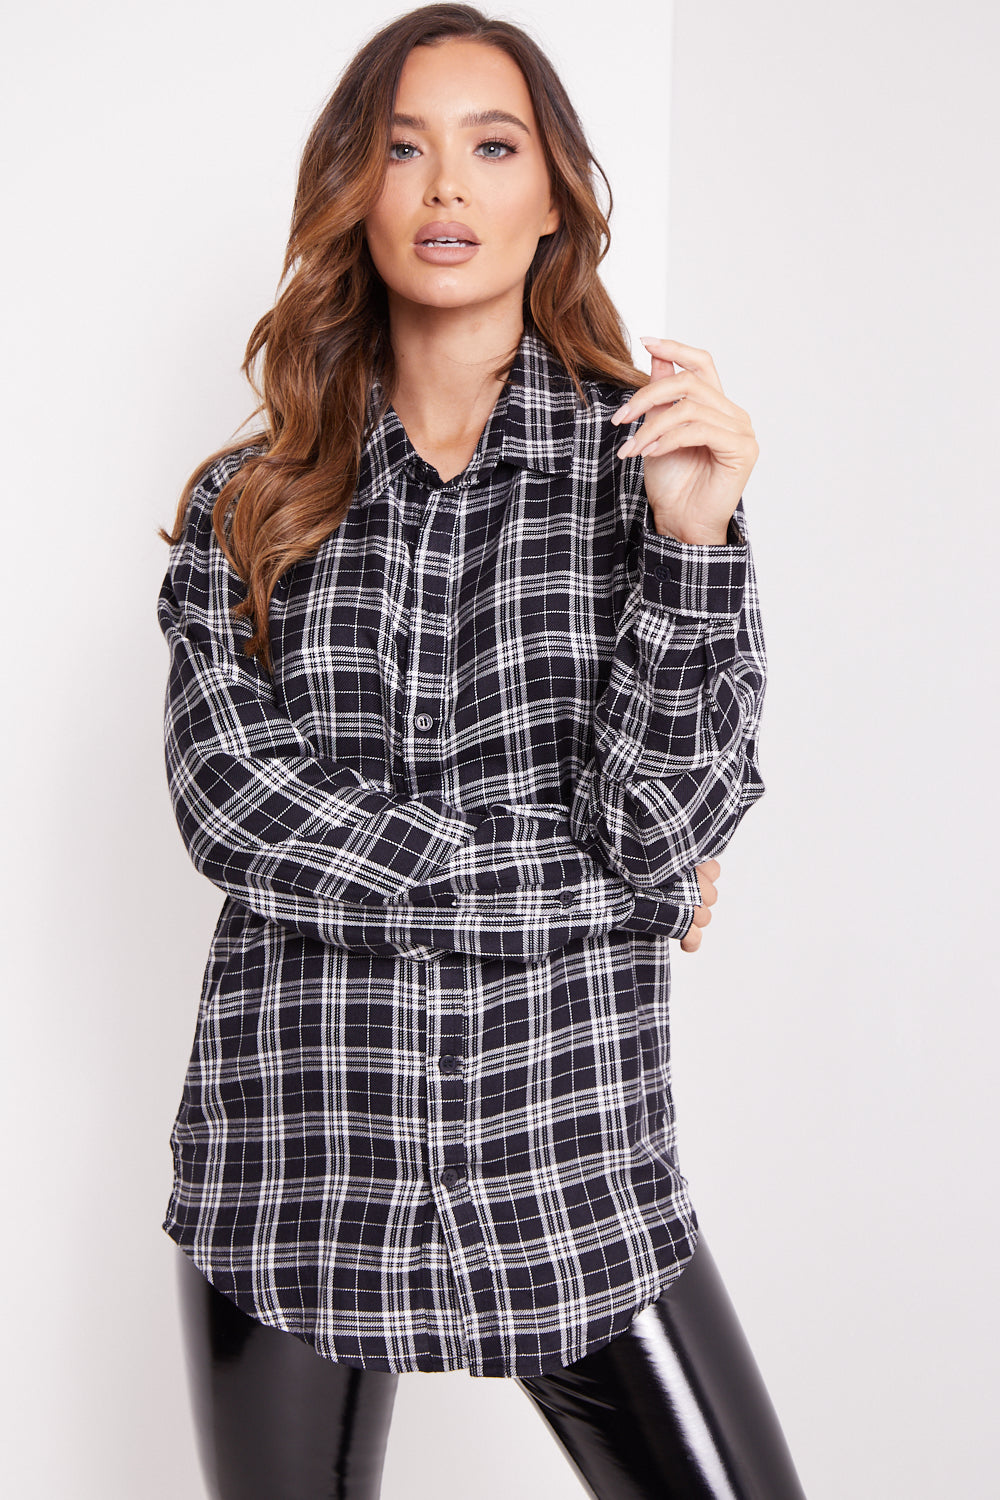 Black and White Check Button Shirt